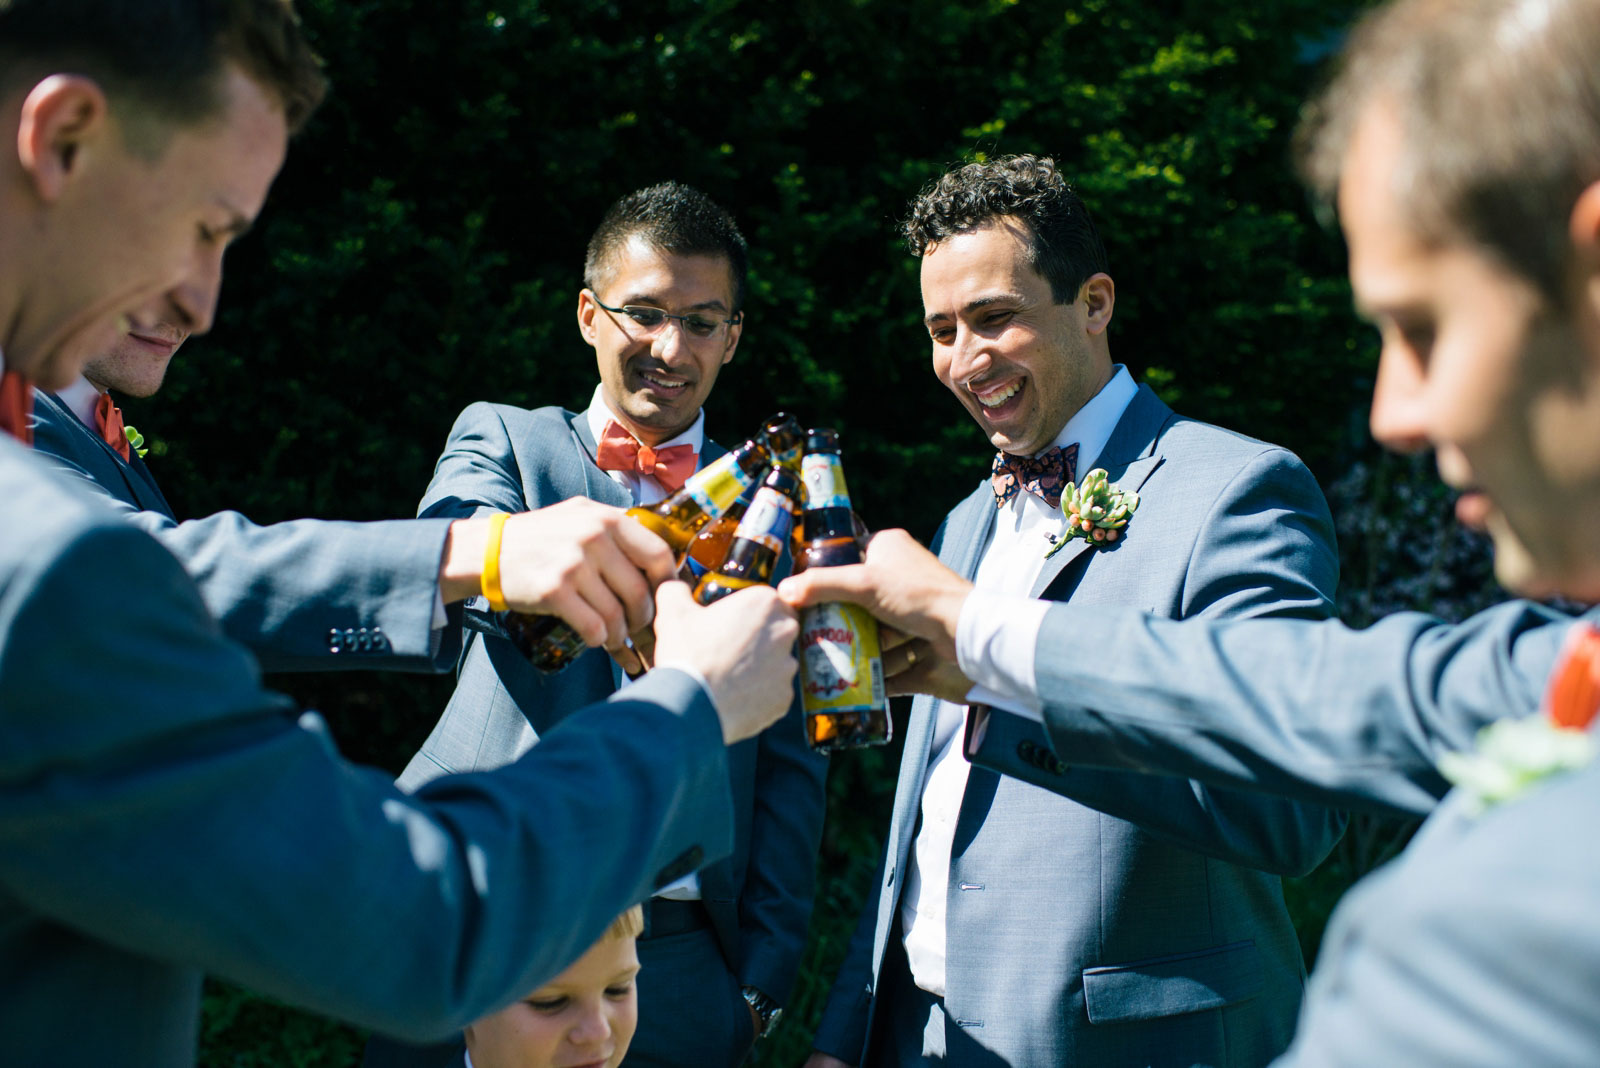 candid shot of groomsmen sharing a toast drinking Harpoon beer and hanging out during portraits